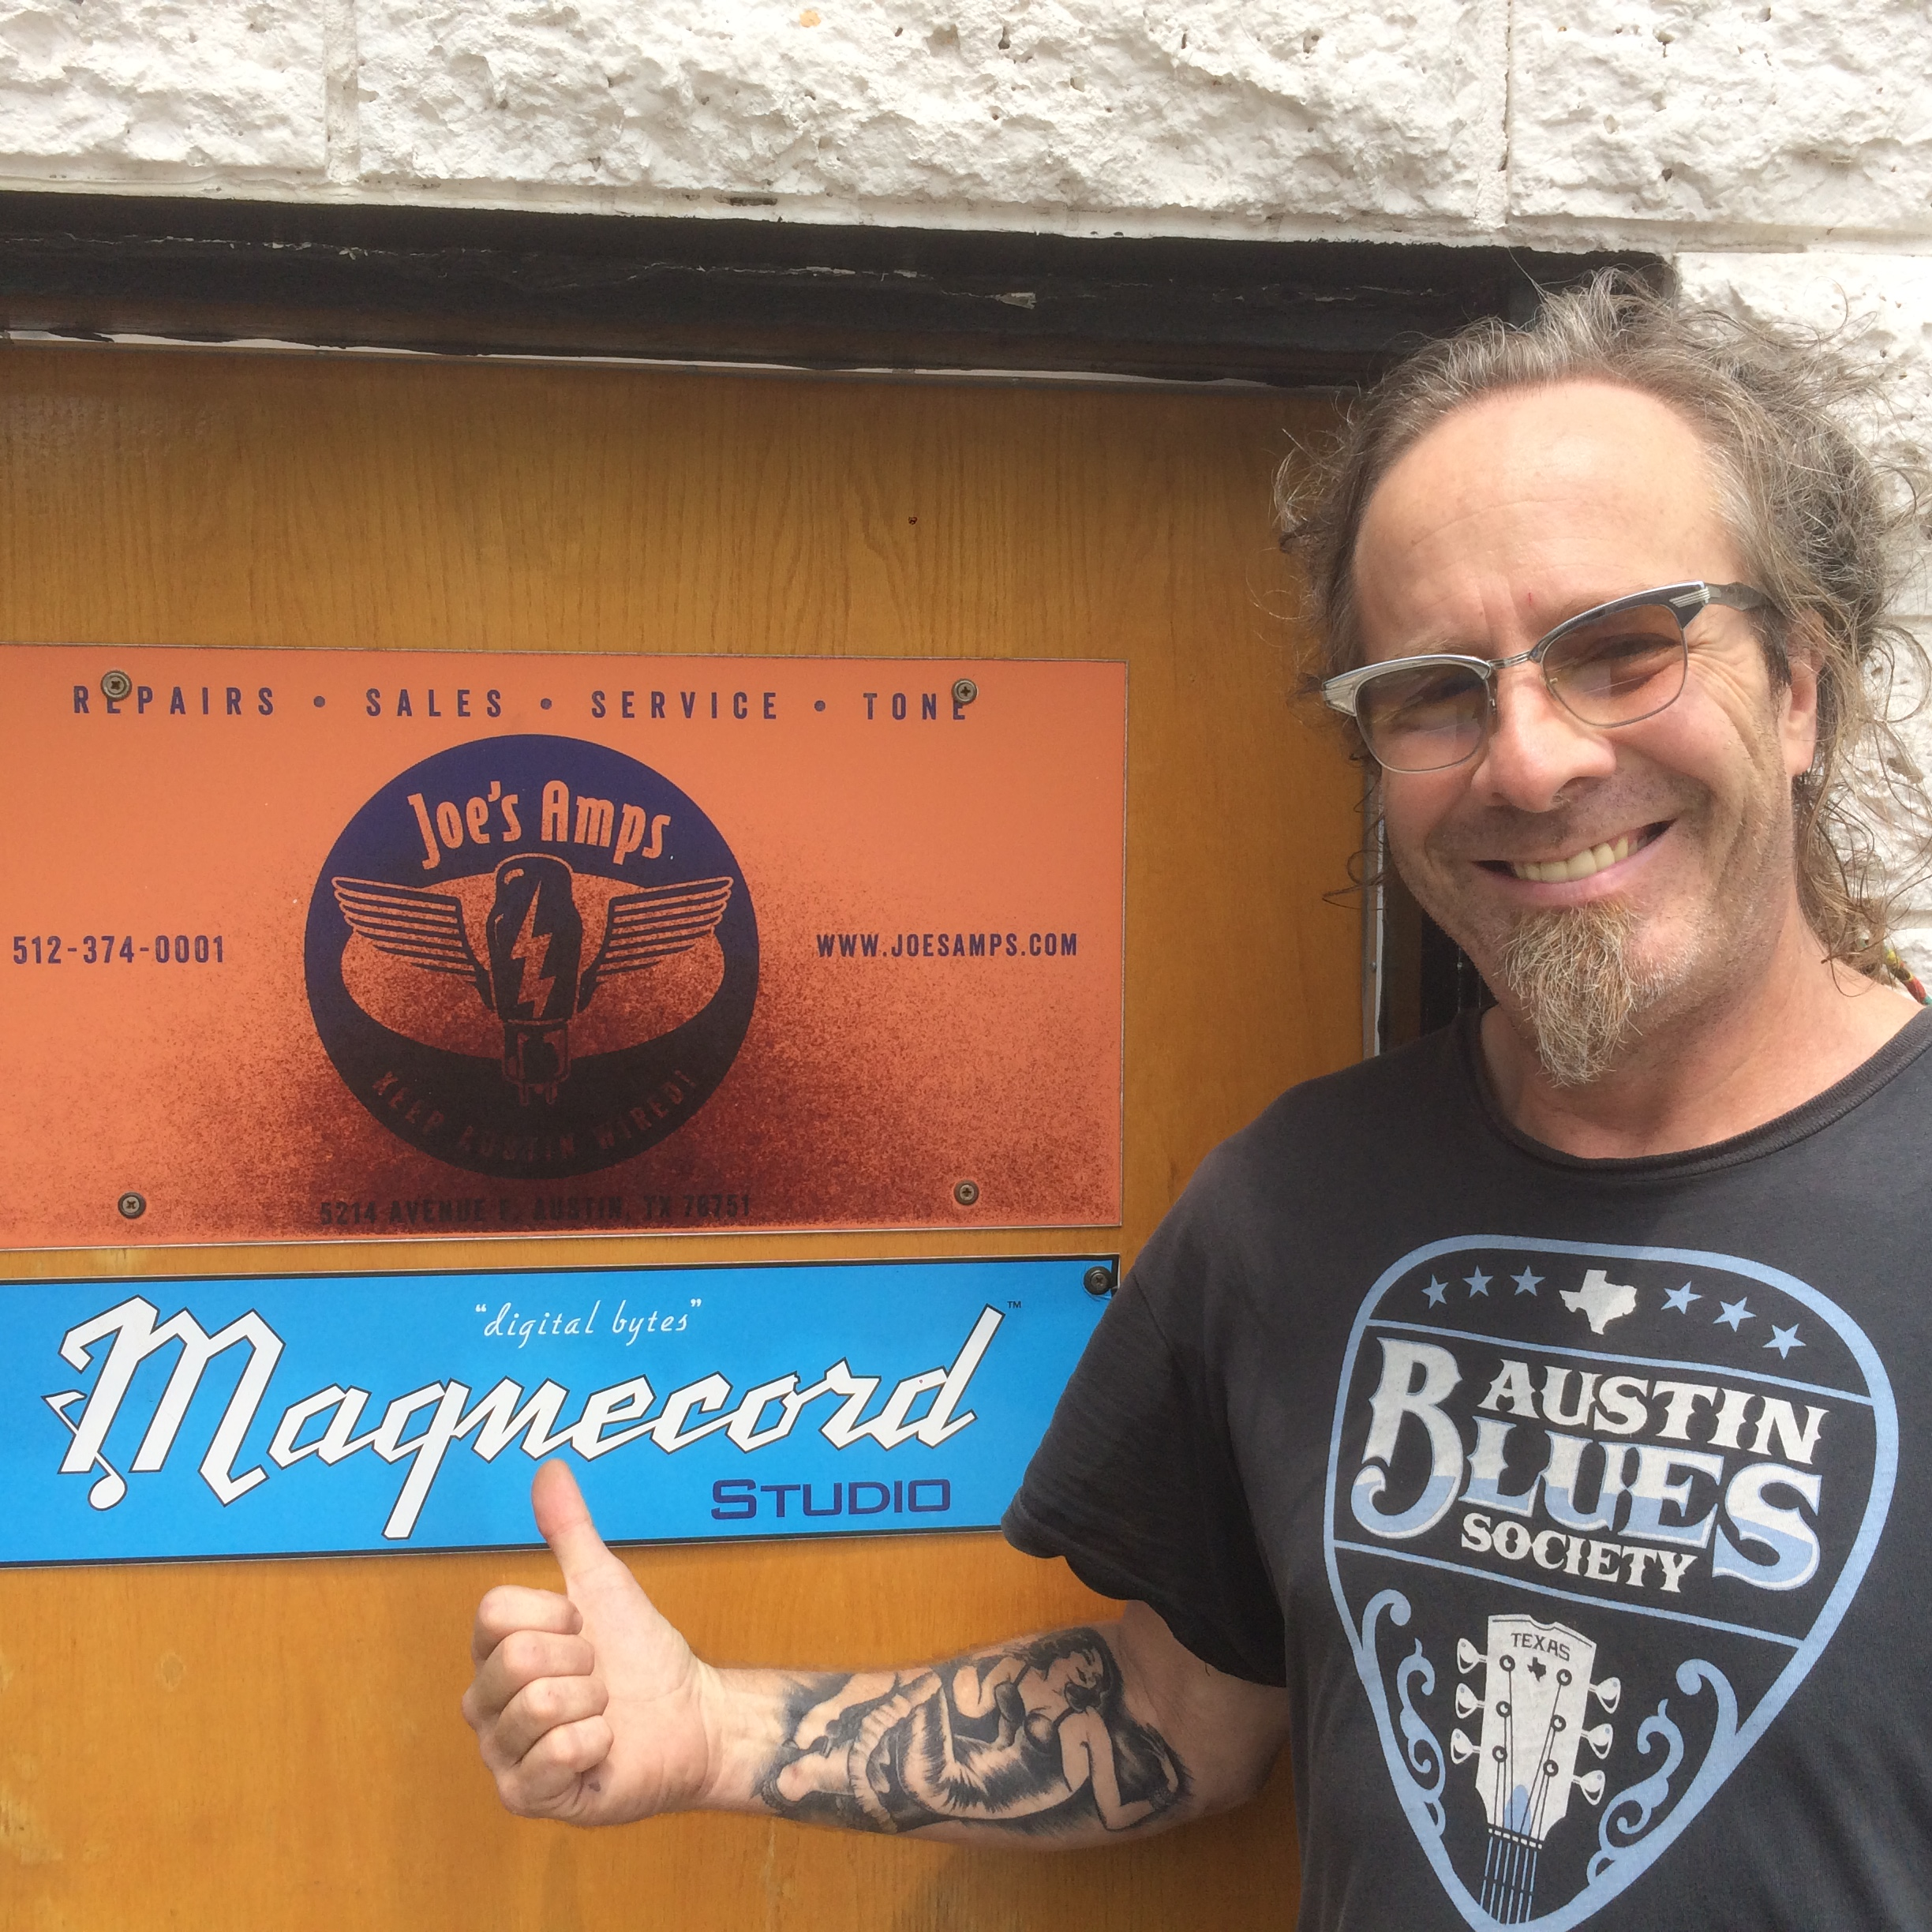 Ben Stevens at the Magnecord  Studio